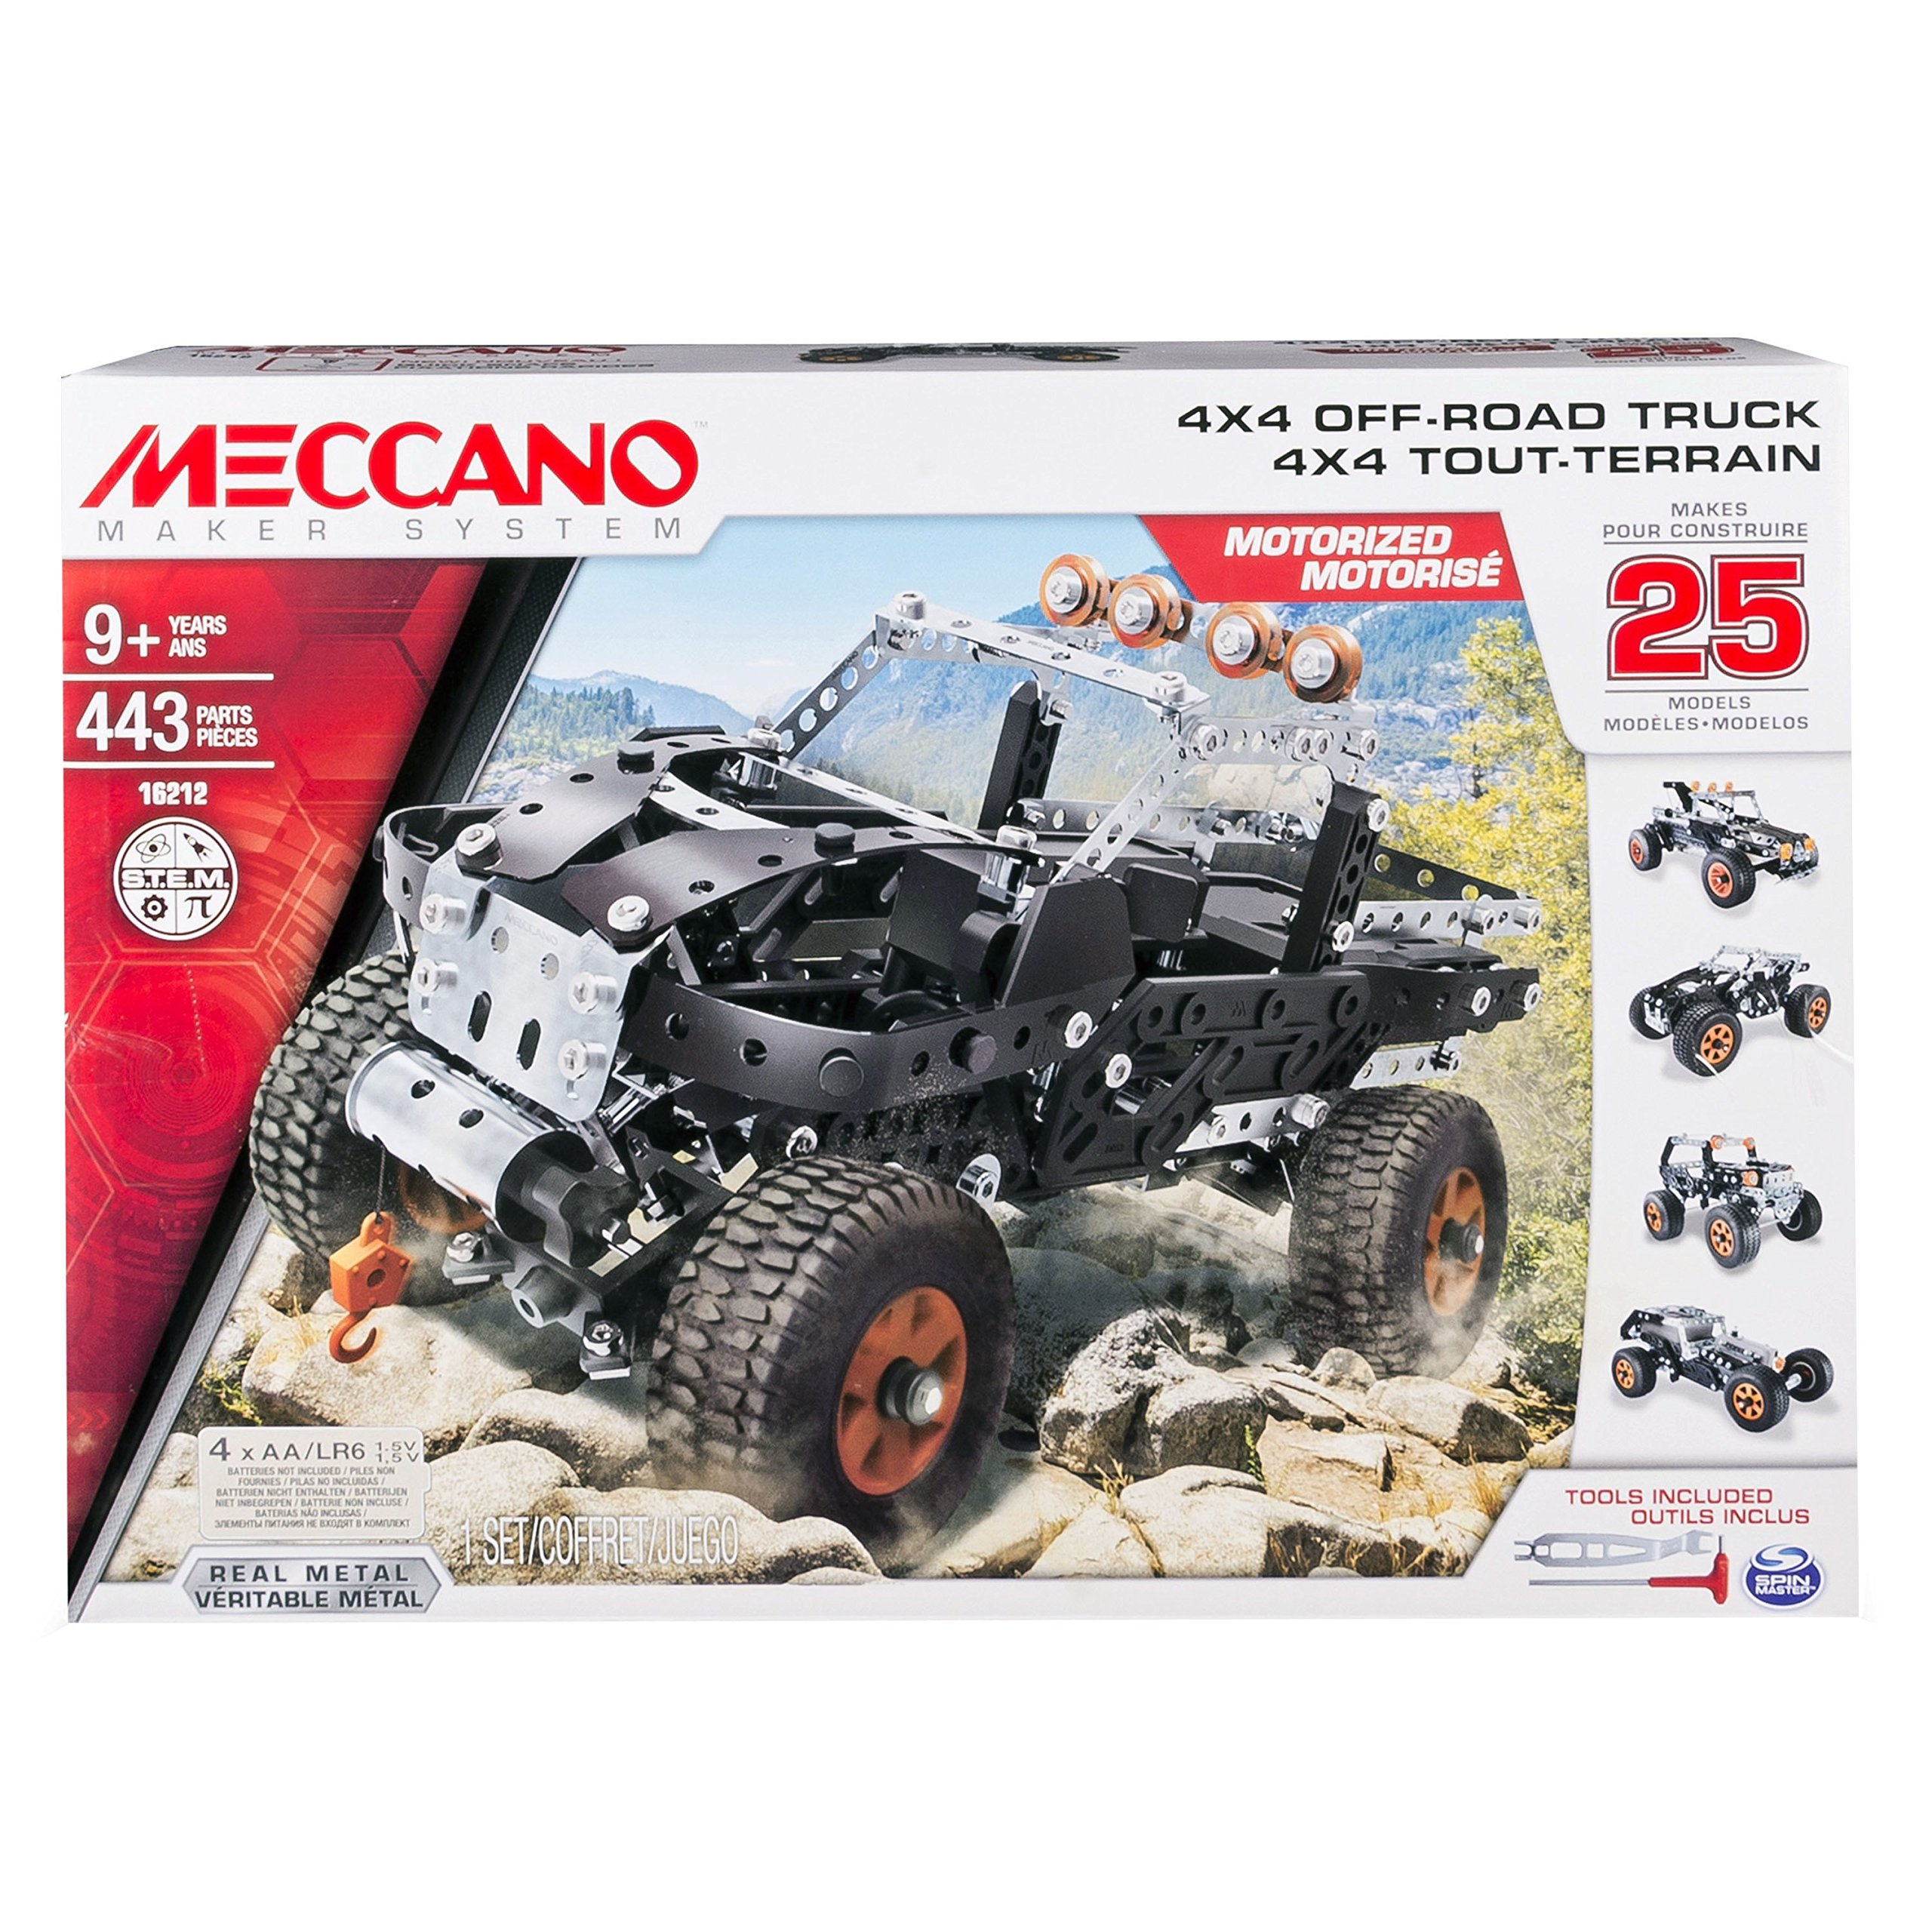 Meccano Erector, 4x4 Off-Road Truck 25 Model Building Set, 443 Pieces, for Ages 9 and up, STEM Construction Education Toy